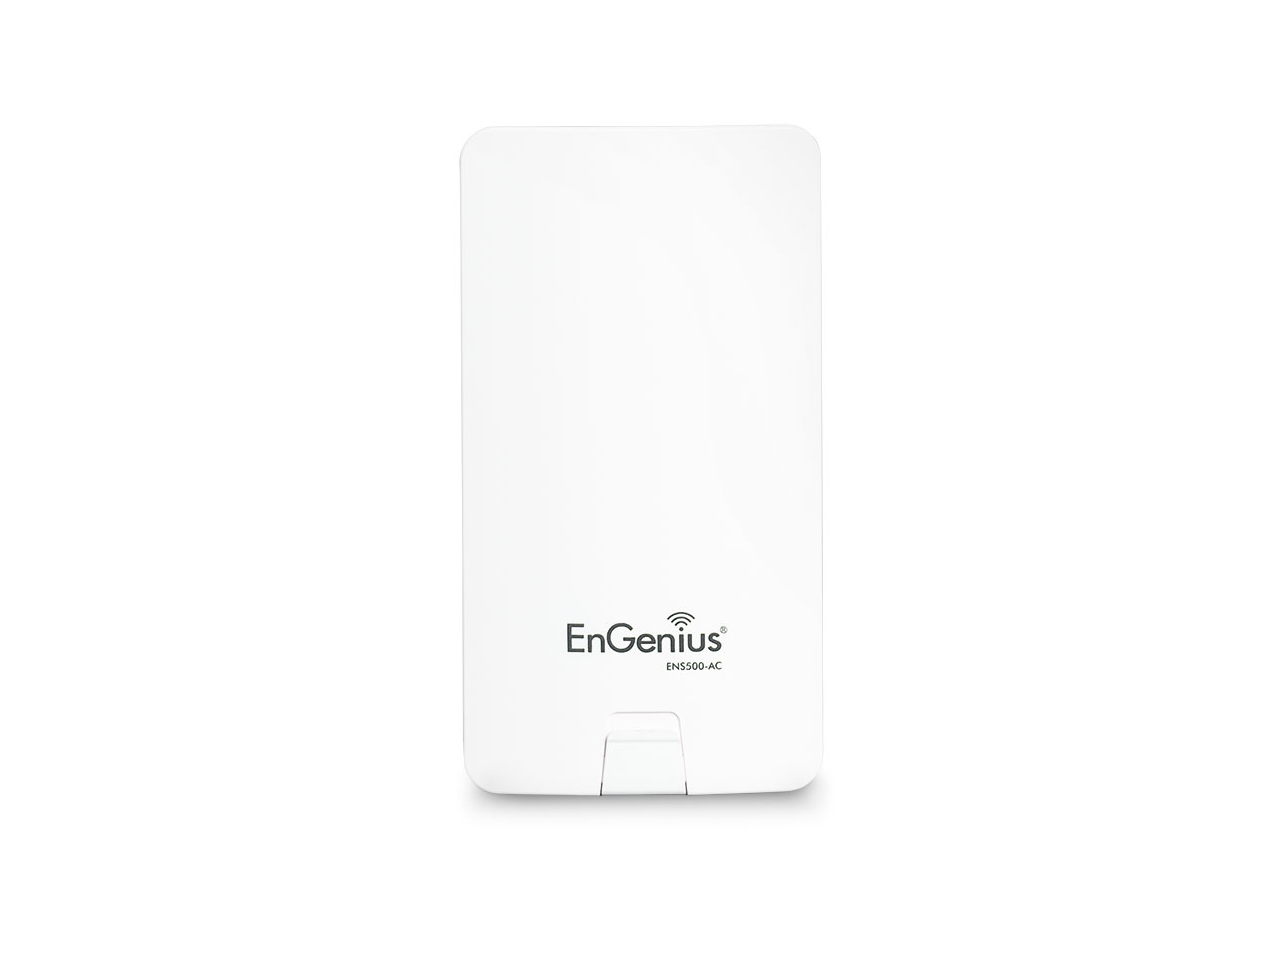 ENGENİUS ENS500-AC - 5 GHz Outdoor 11ac Wave 2 PtP Wireless Bridge